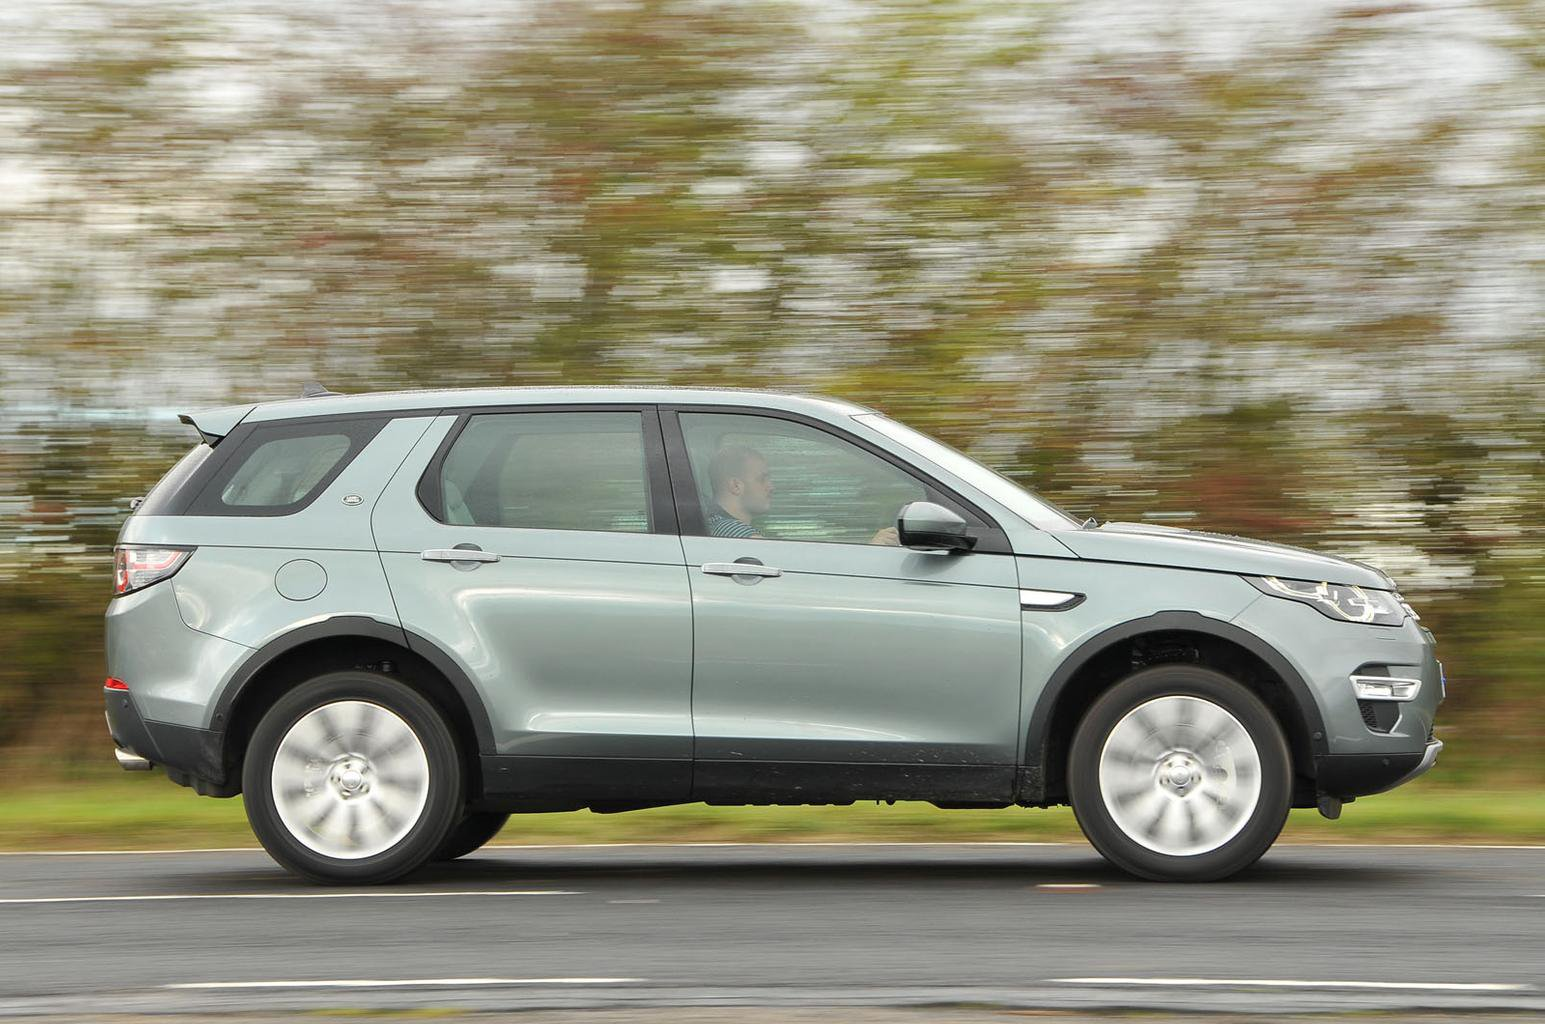 Used Land Rover Discovery Sport 4x4 (14 - present)